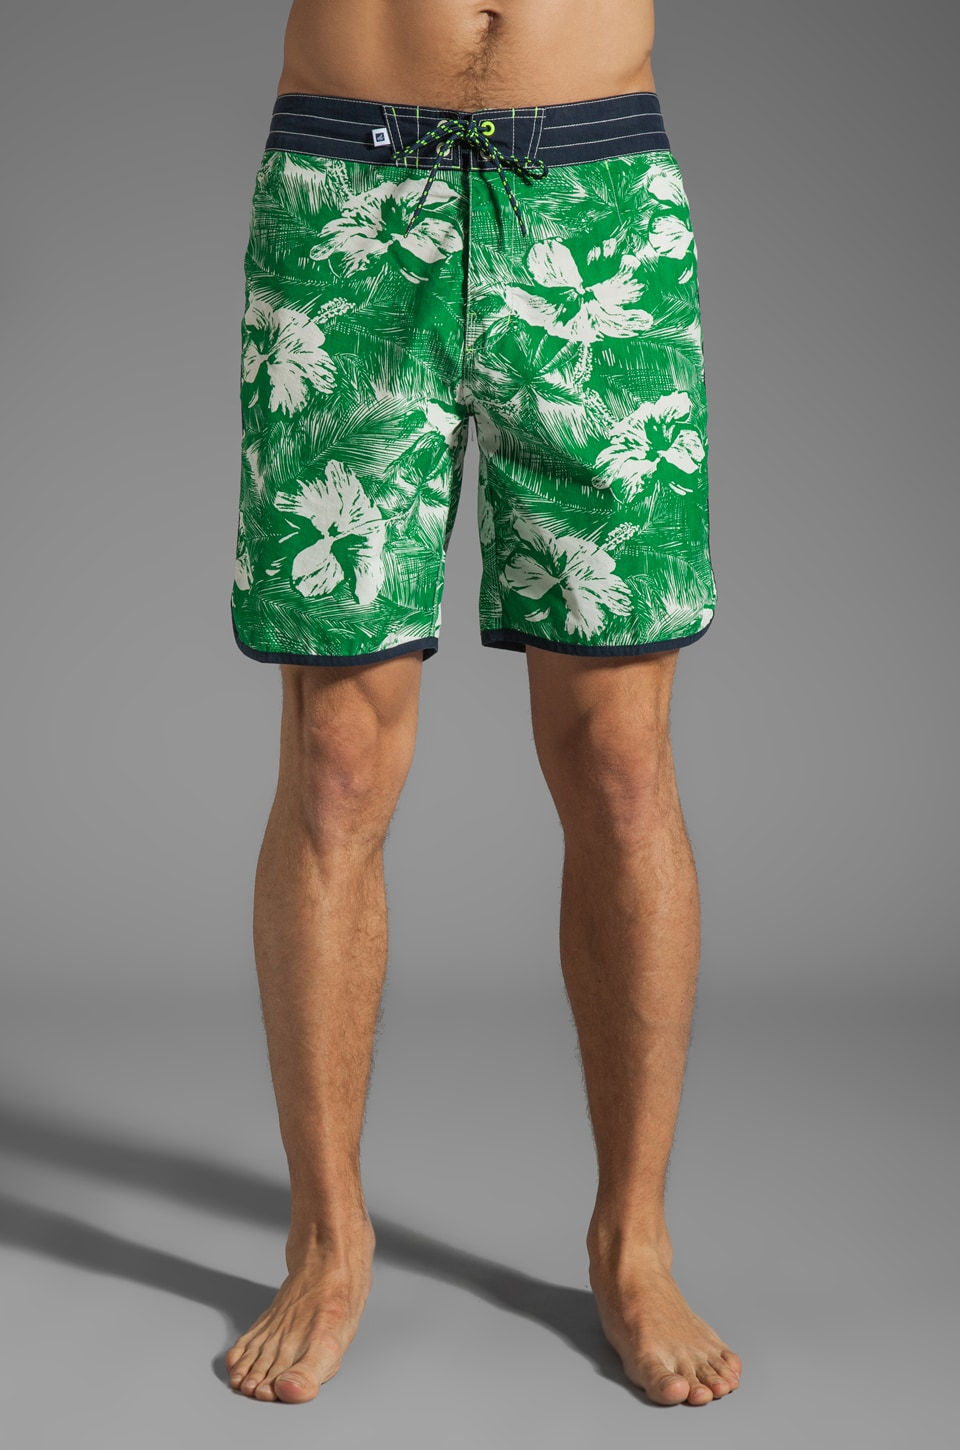 Sperry Top-Sider Tropical Hibiscus Boardshort in Kelly